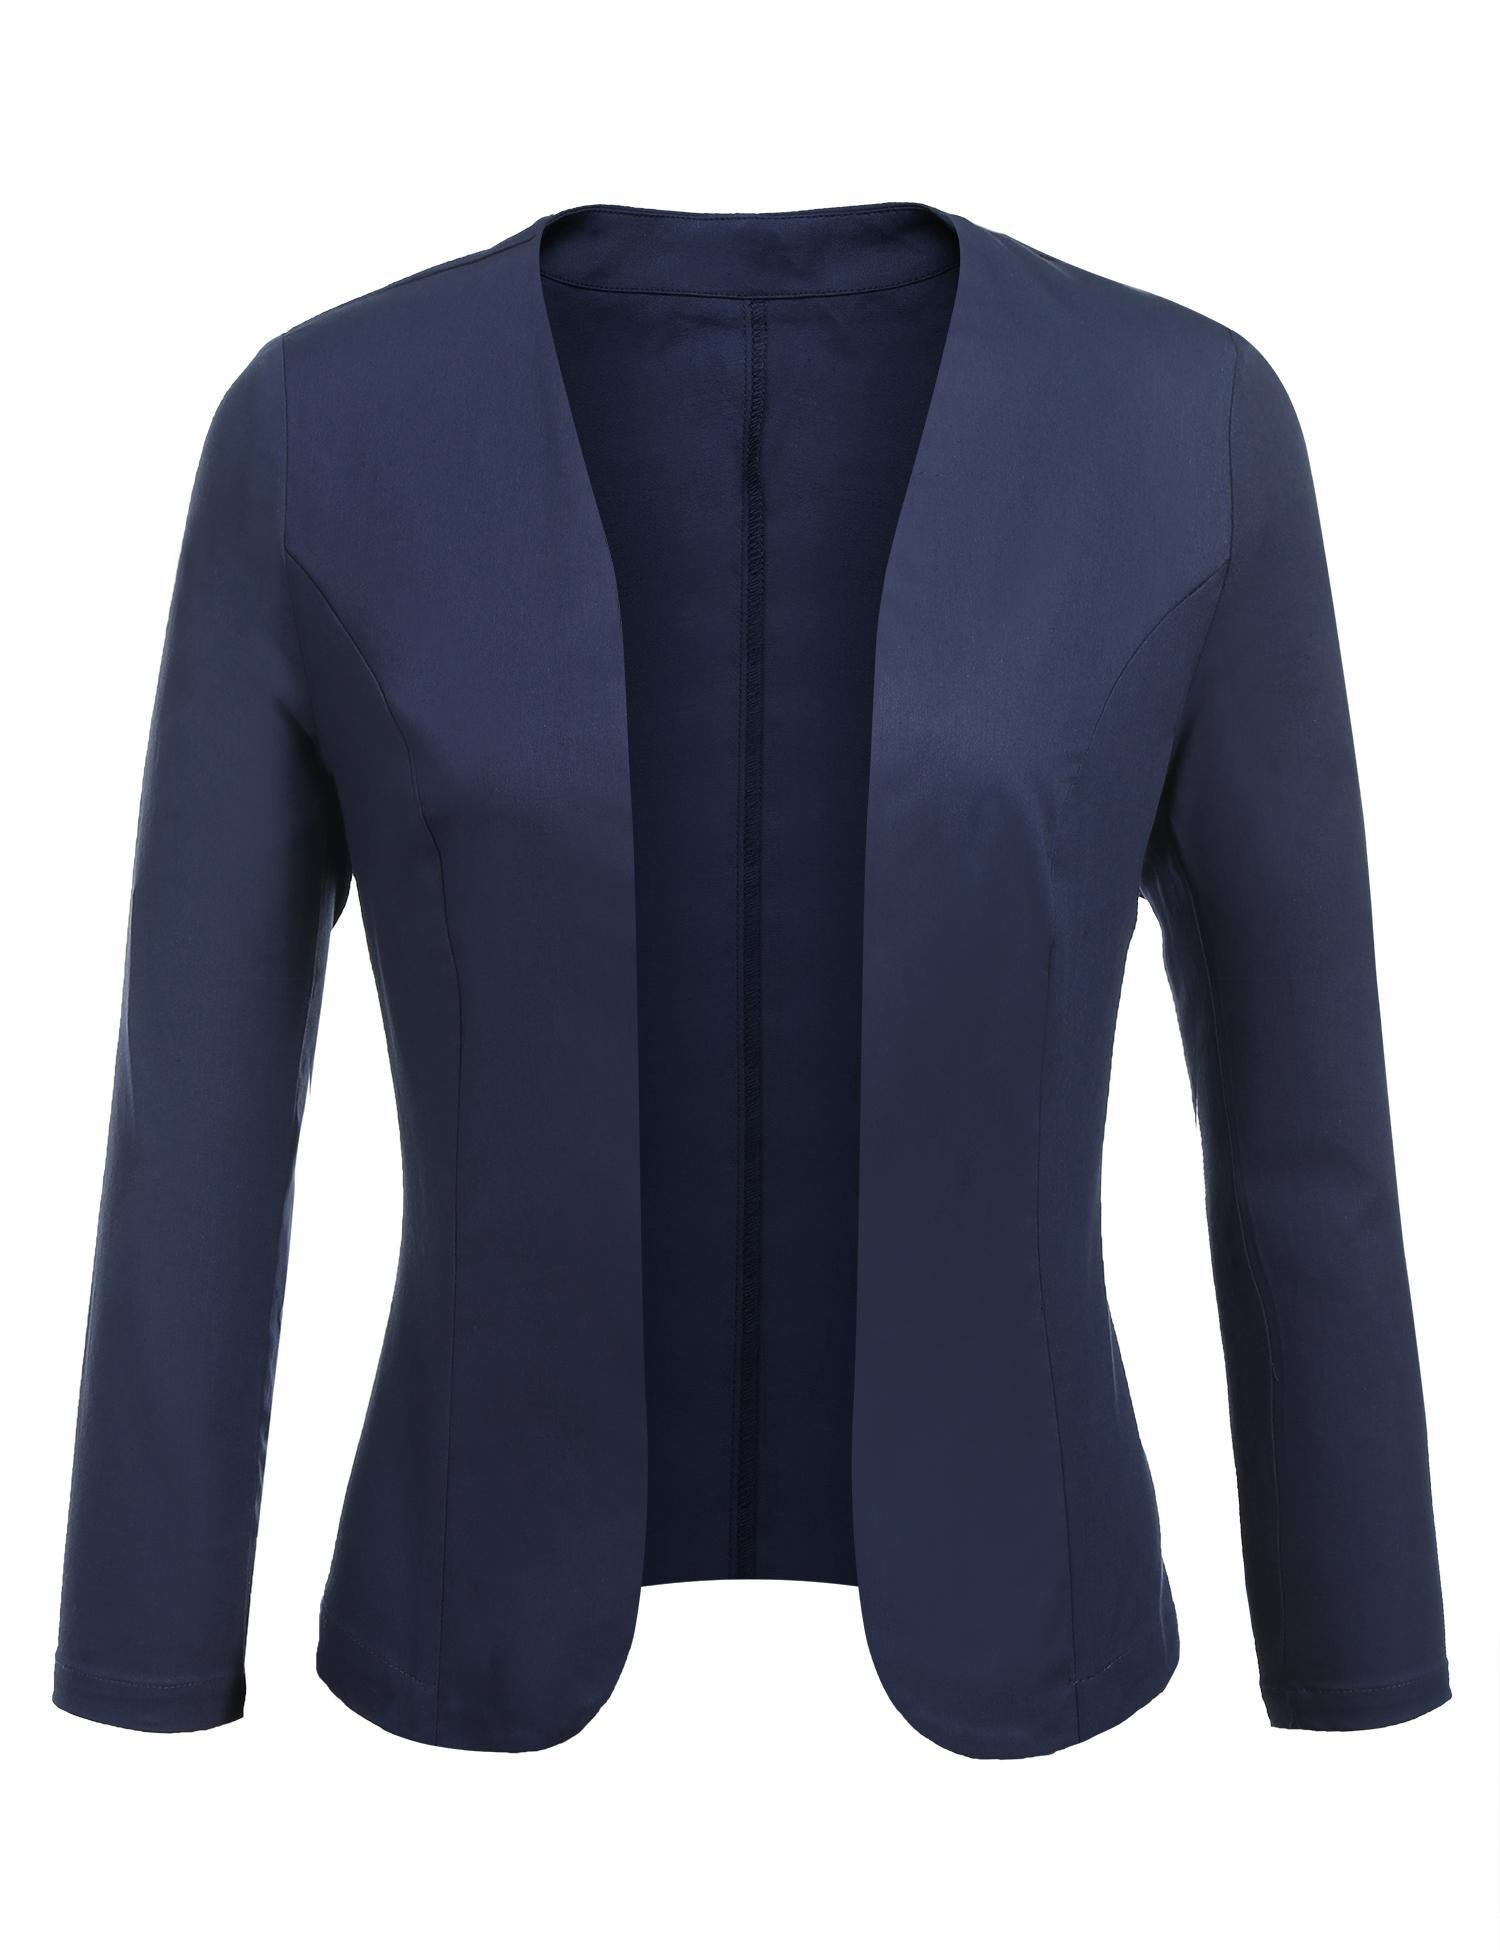 Concep Women's Cropped Blazer Casual Work Office Jacket Lightweight Slim Fit Blazers (Navy Blue, L)